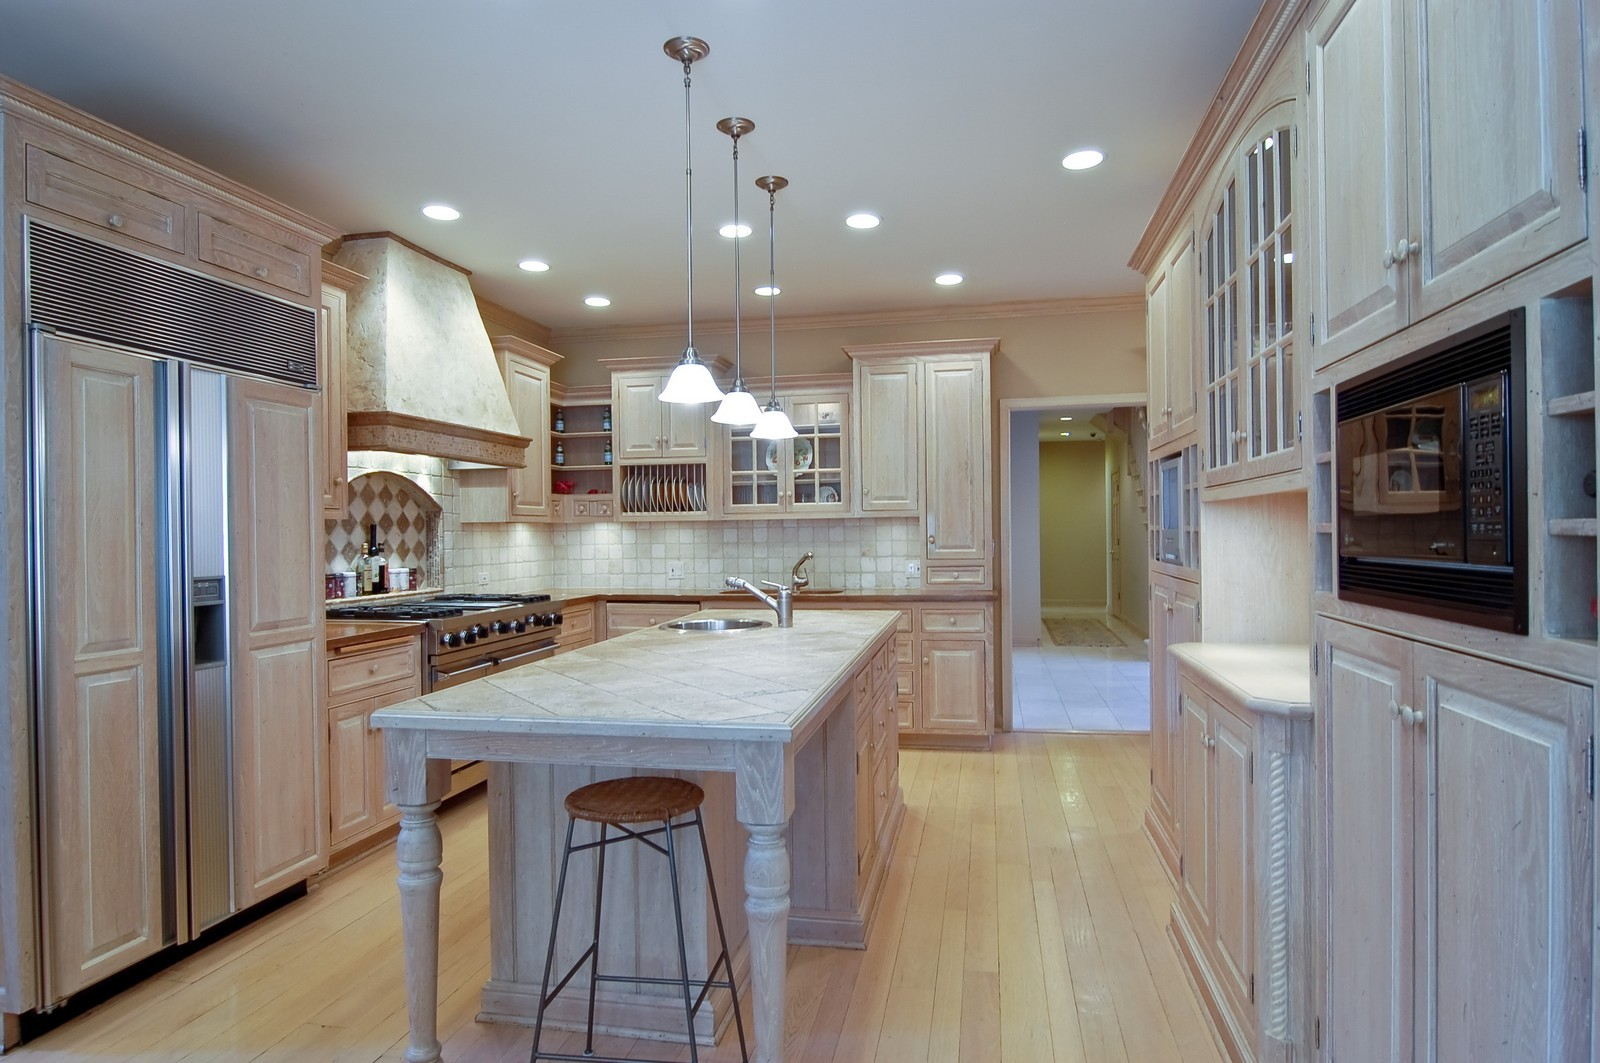 Real Estate Photography - 656 E 6th St, Hinsdale, IL, 60521 - Kitchen